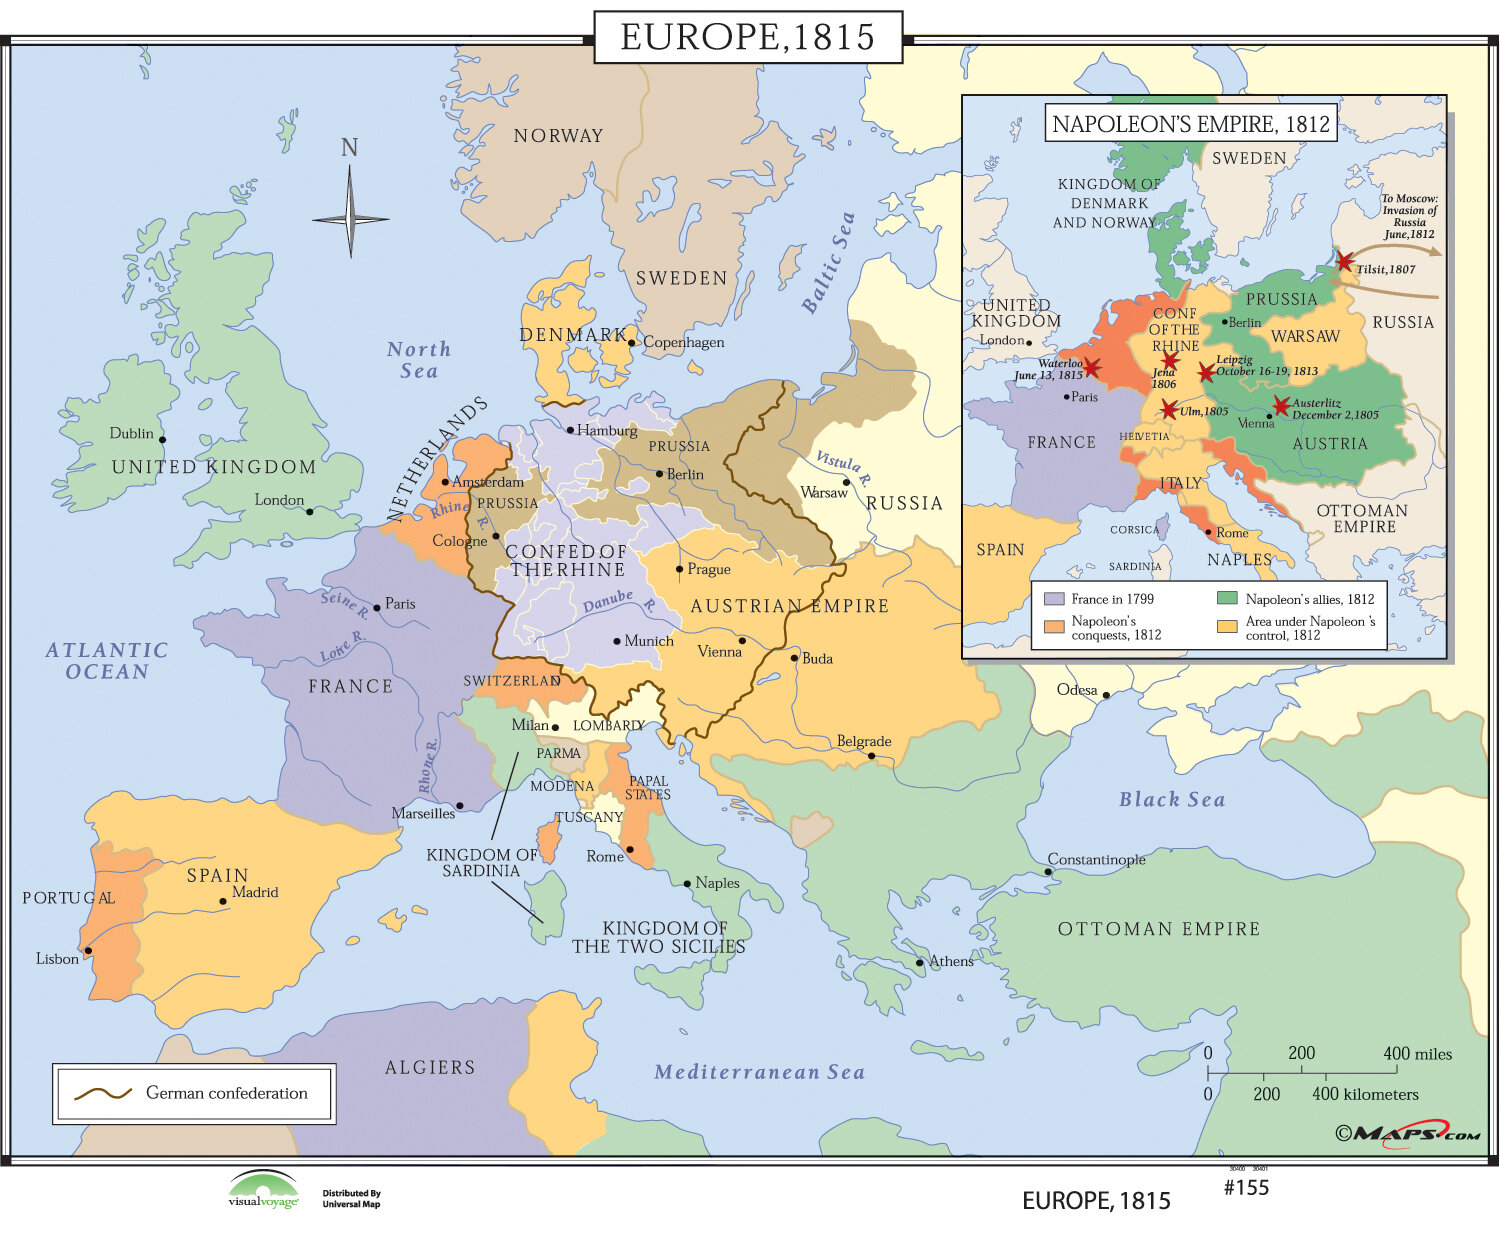 Universal Map World History Wall Maps - Europe 1815 | Wayfair